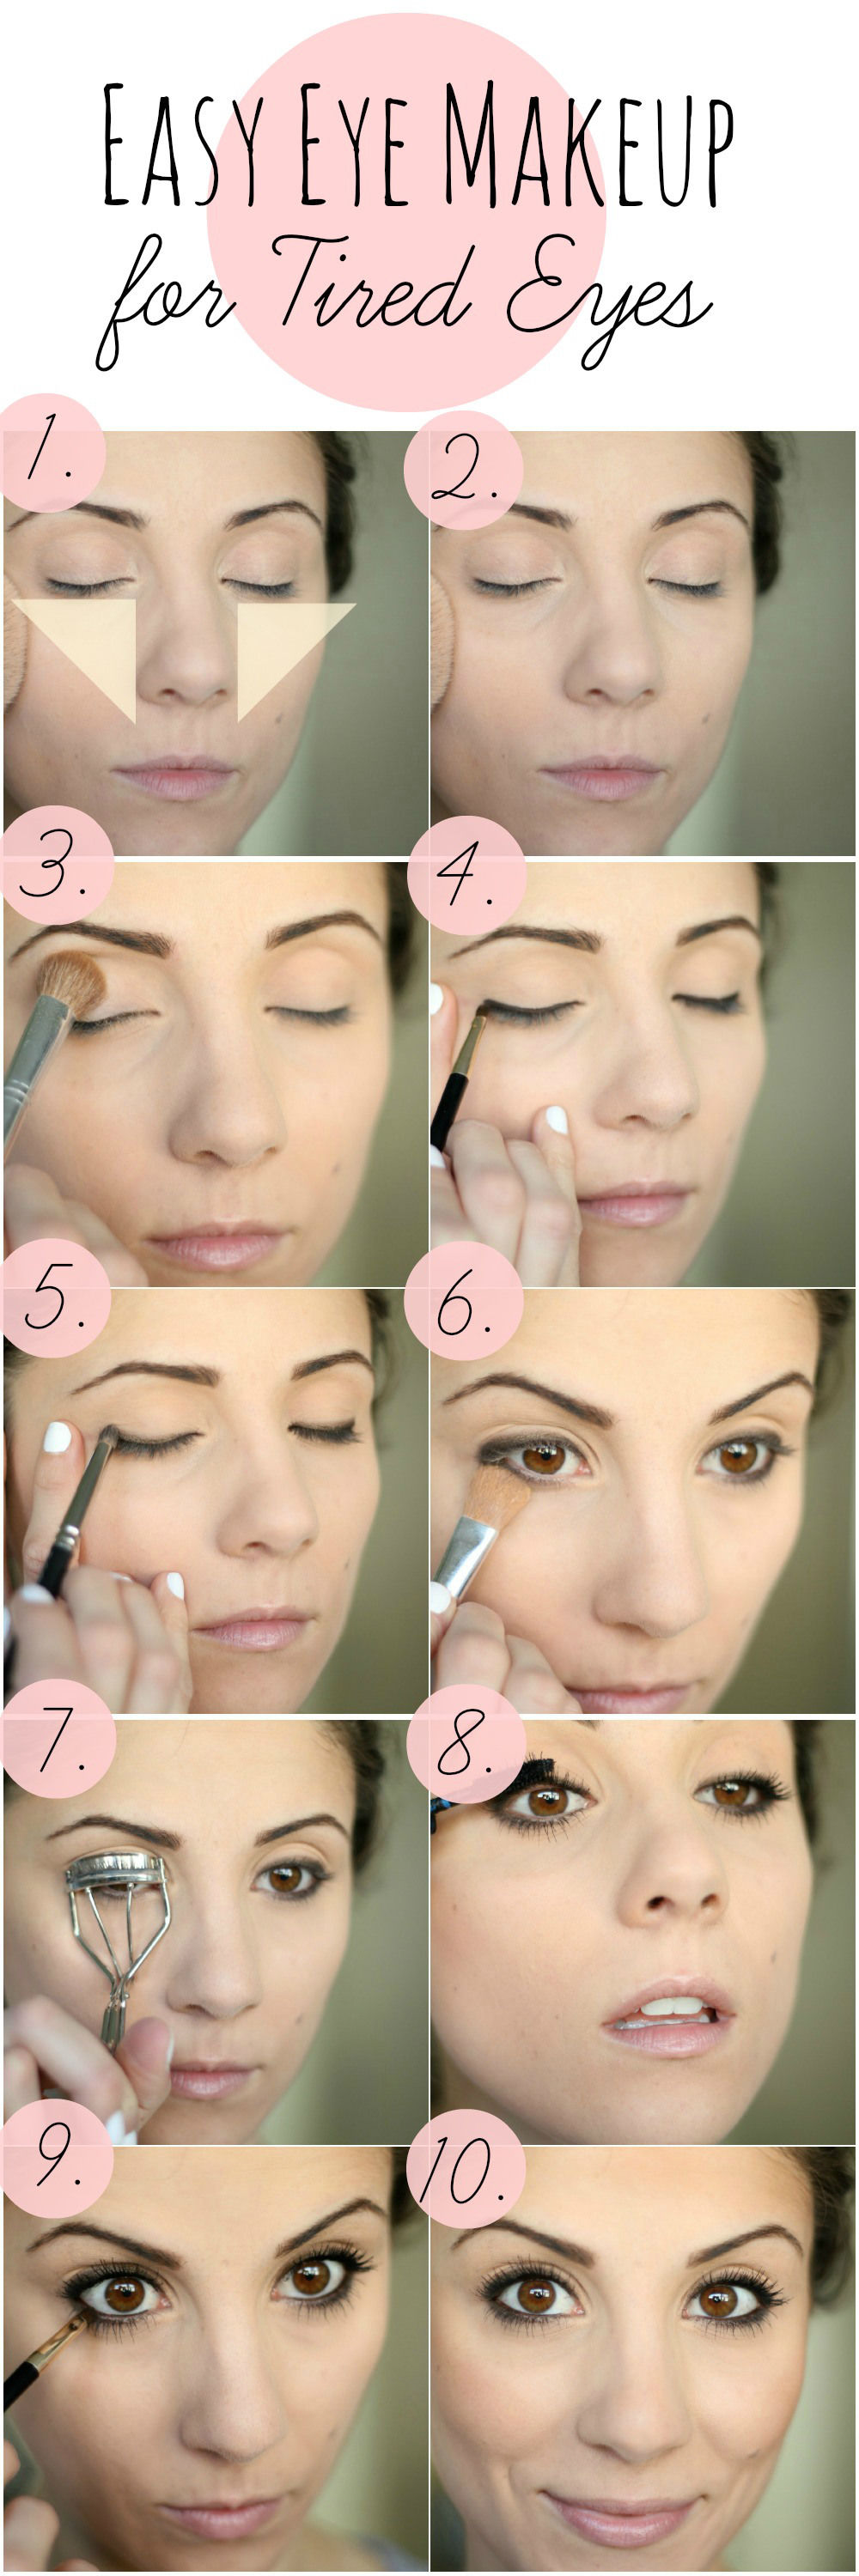 Easy Eye Makeup Tutorial For Tired Eyes Pictures, Photos